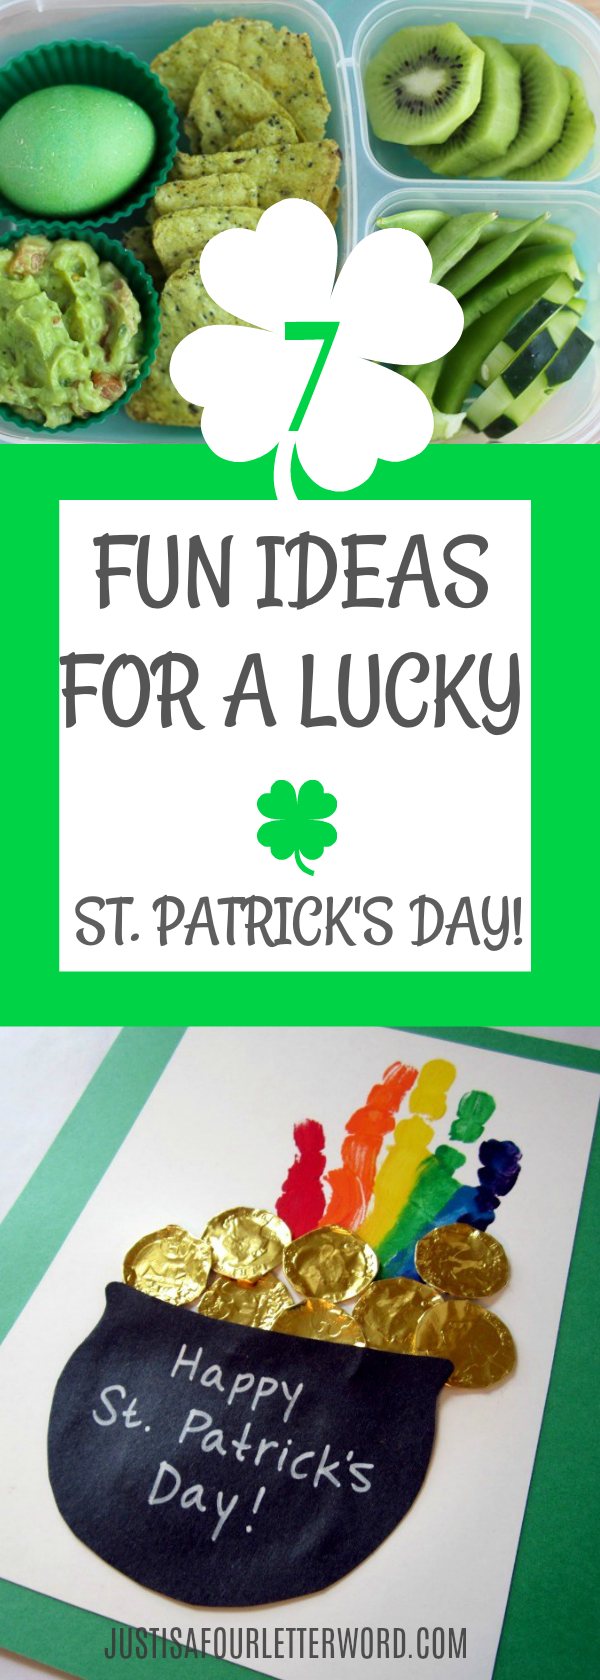 Grab your gold coins and get ready to make some cute kids crafts with these ease St. Patrick's day ideas! Simple, quick and easy is a great way to love on your lucky charms and have a fun St. Paddy's Day just like the Irish!